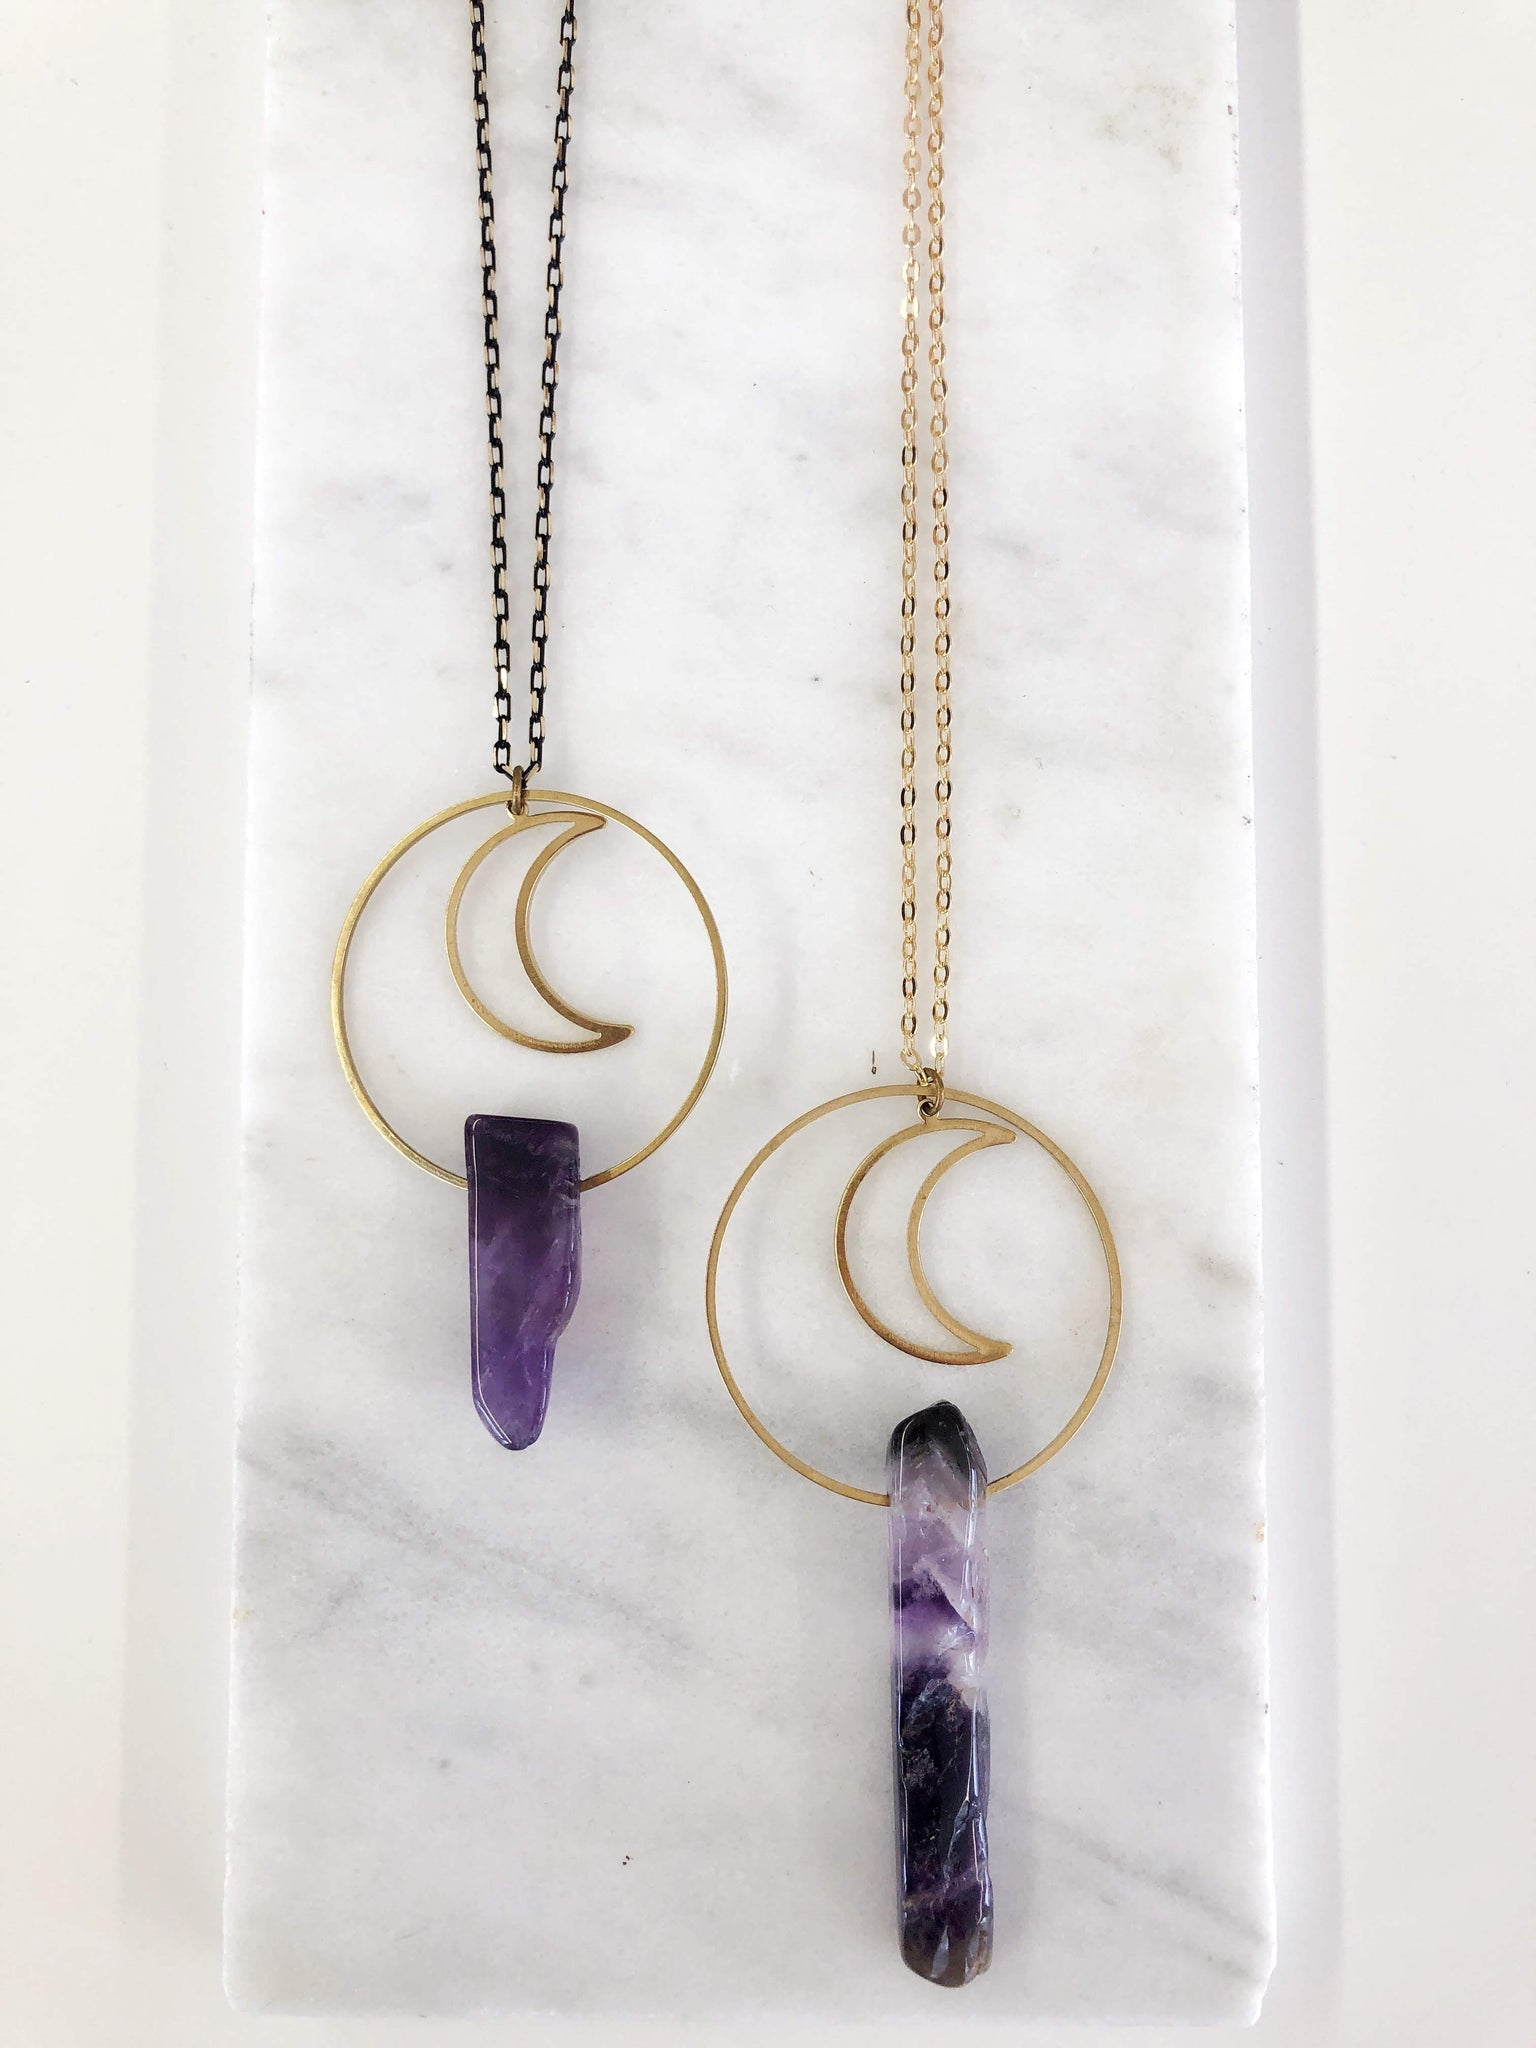 Moon and Amethyst Necklace - Aurora Lux Jewellery